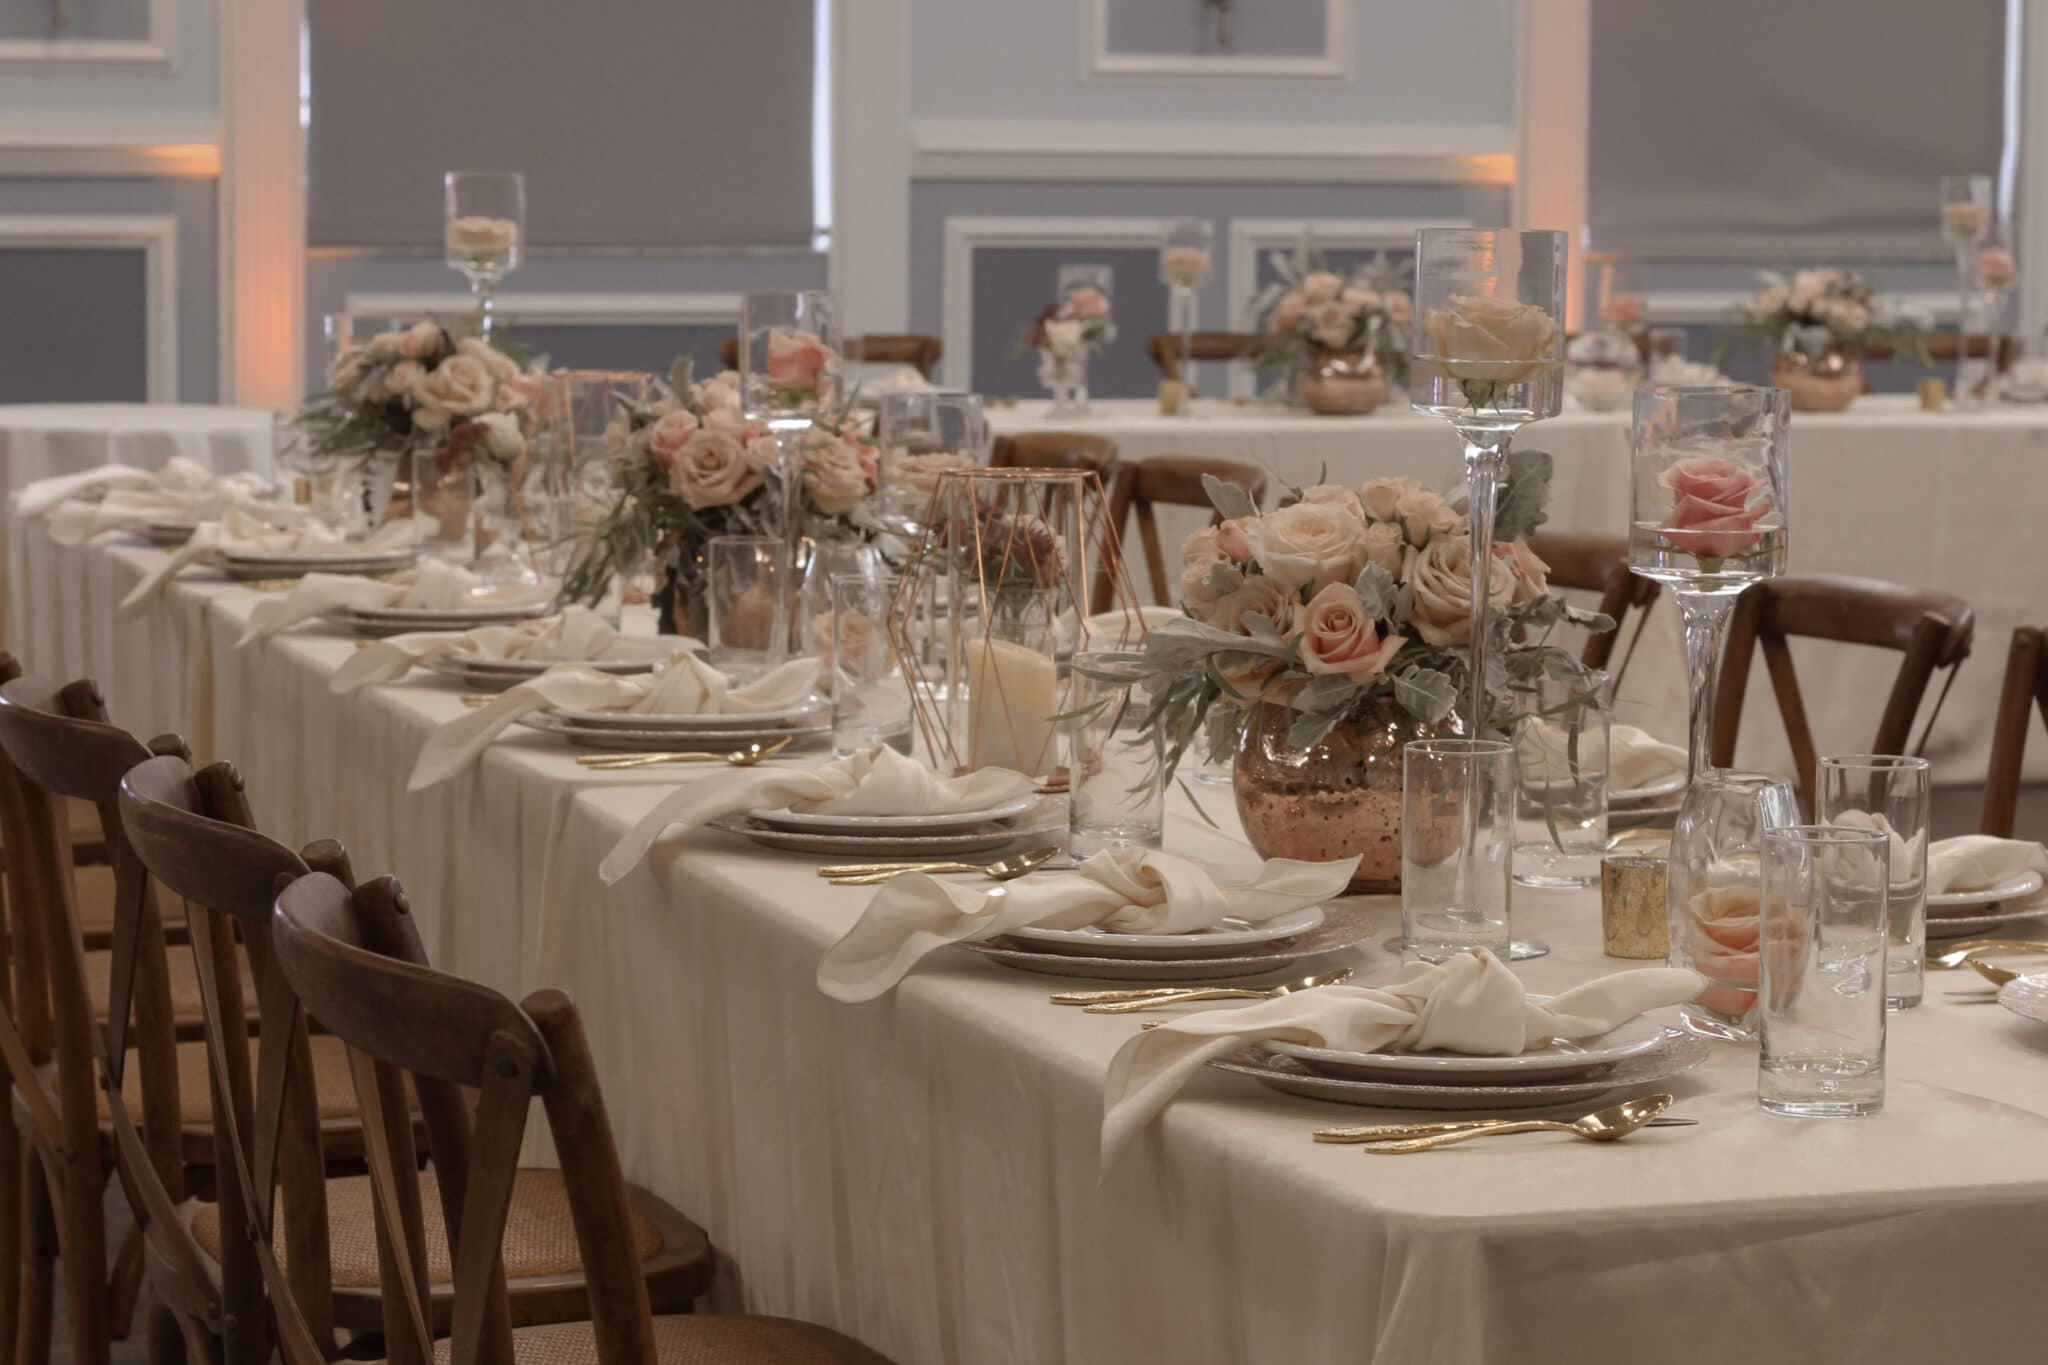 The BEV Event Center table setting, white with pink flowers